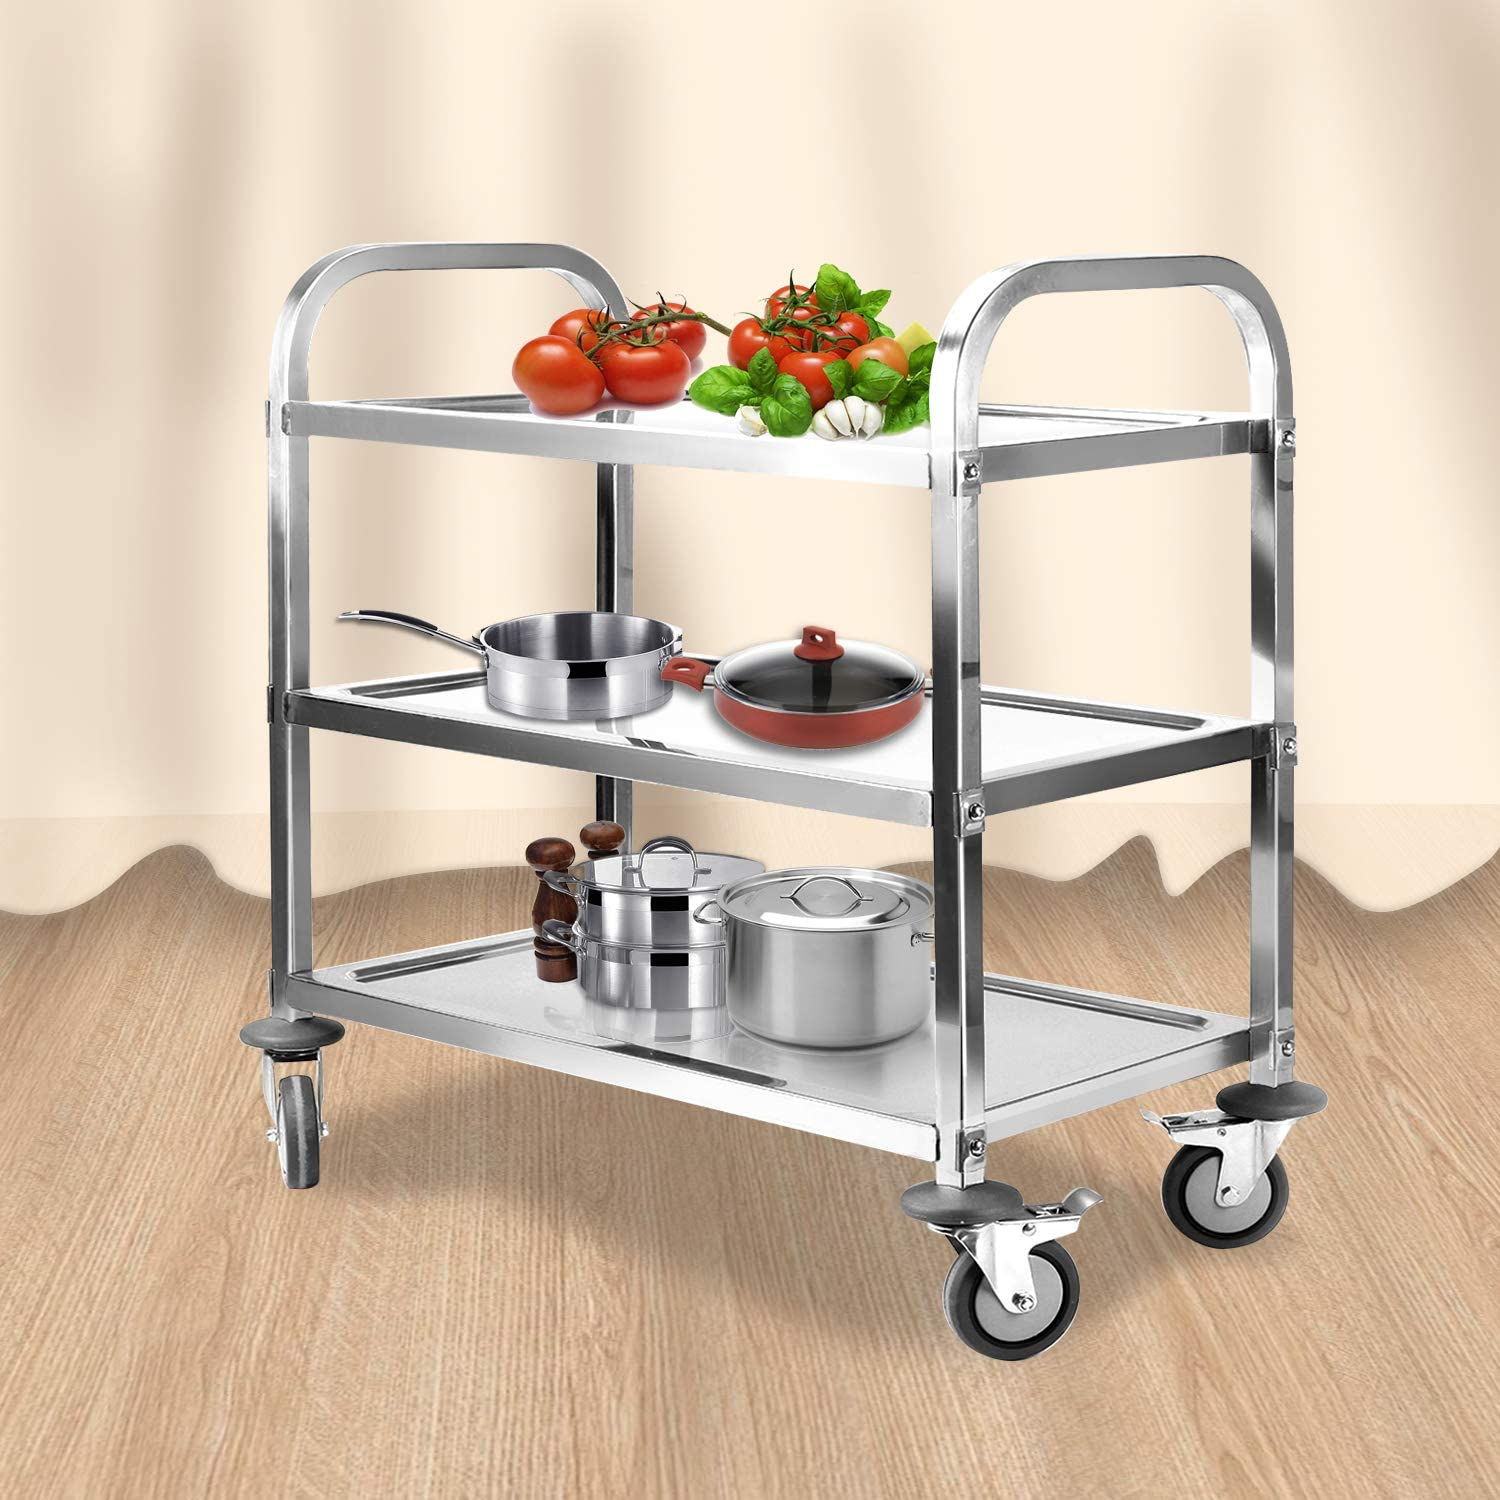 uyoyous Stainless Steel 3-Tier Utility Rolling Cart Kitchen Island Trolley Serving Cart Catering Storage with 2 Locking Wheels for Home Hotel Restaurant Up to 220 lbs Capacity 37.4x19.7x37.4 Inch